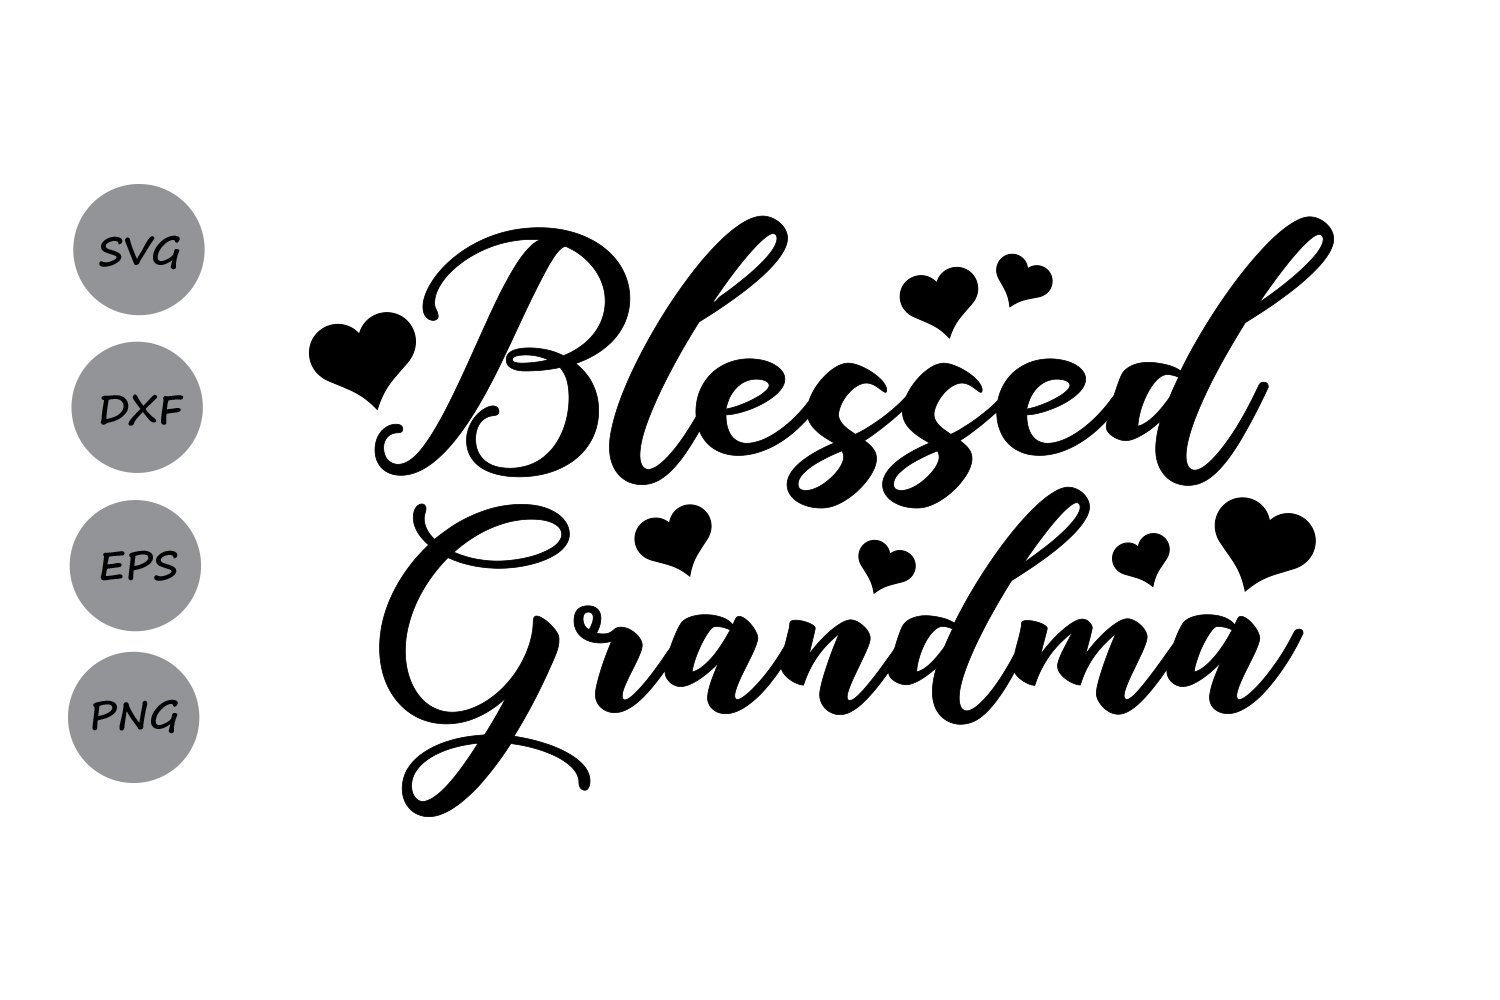 Free After all, she's the one who raised your mom into the woman you love and admire the most. Blessed Grandma Svg Mother S Day Svg Grandma Svg Grandmom 87773 Cut Files Design Bundles SVG, PNG, EPS, DXF File